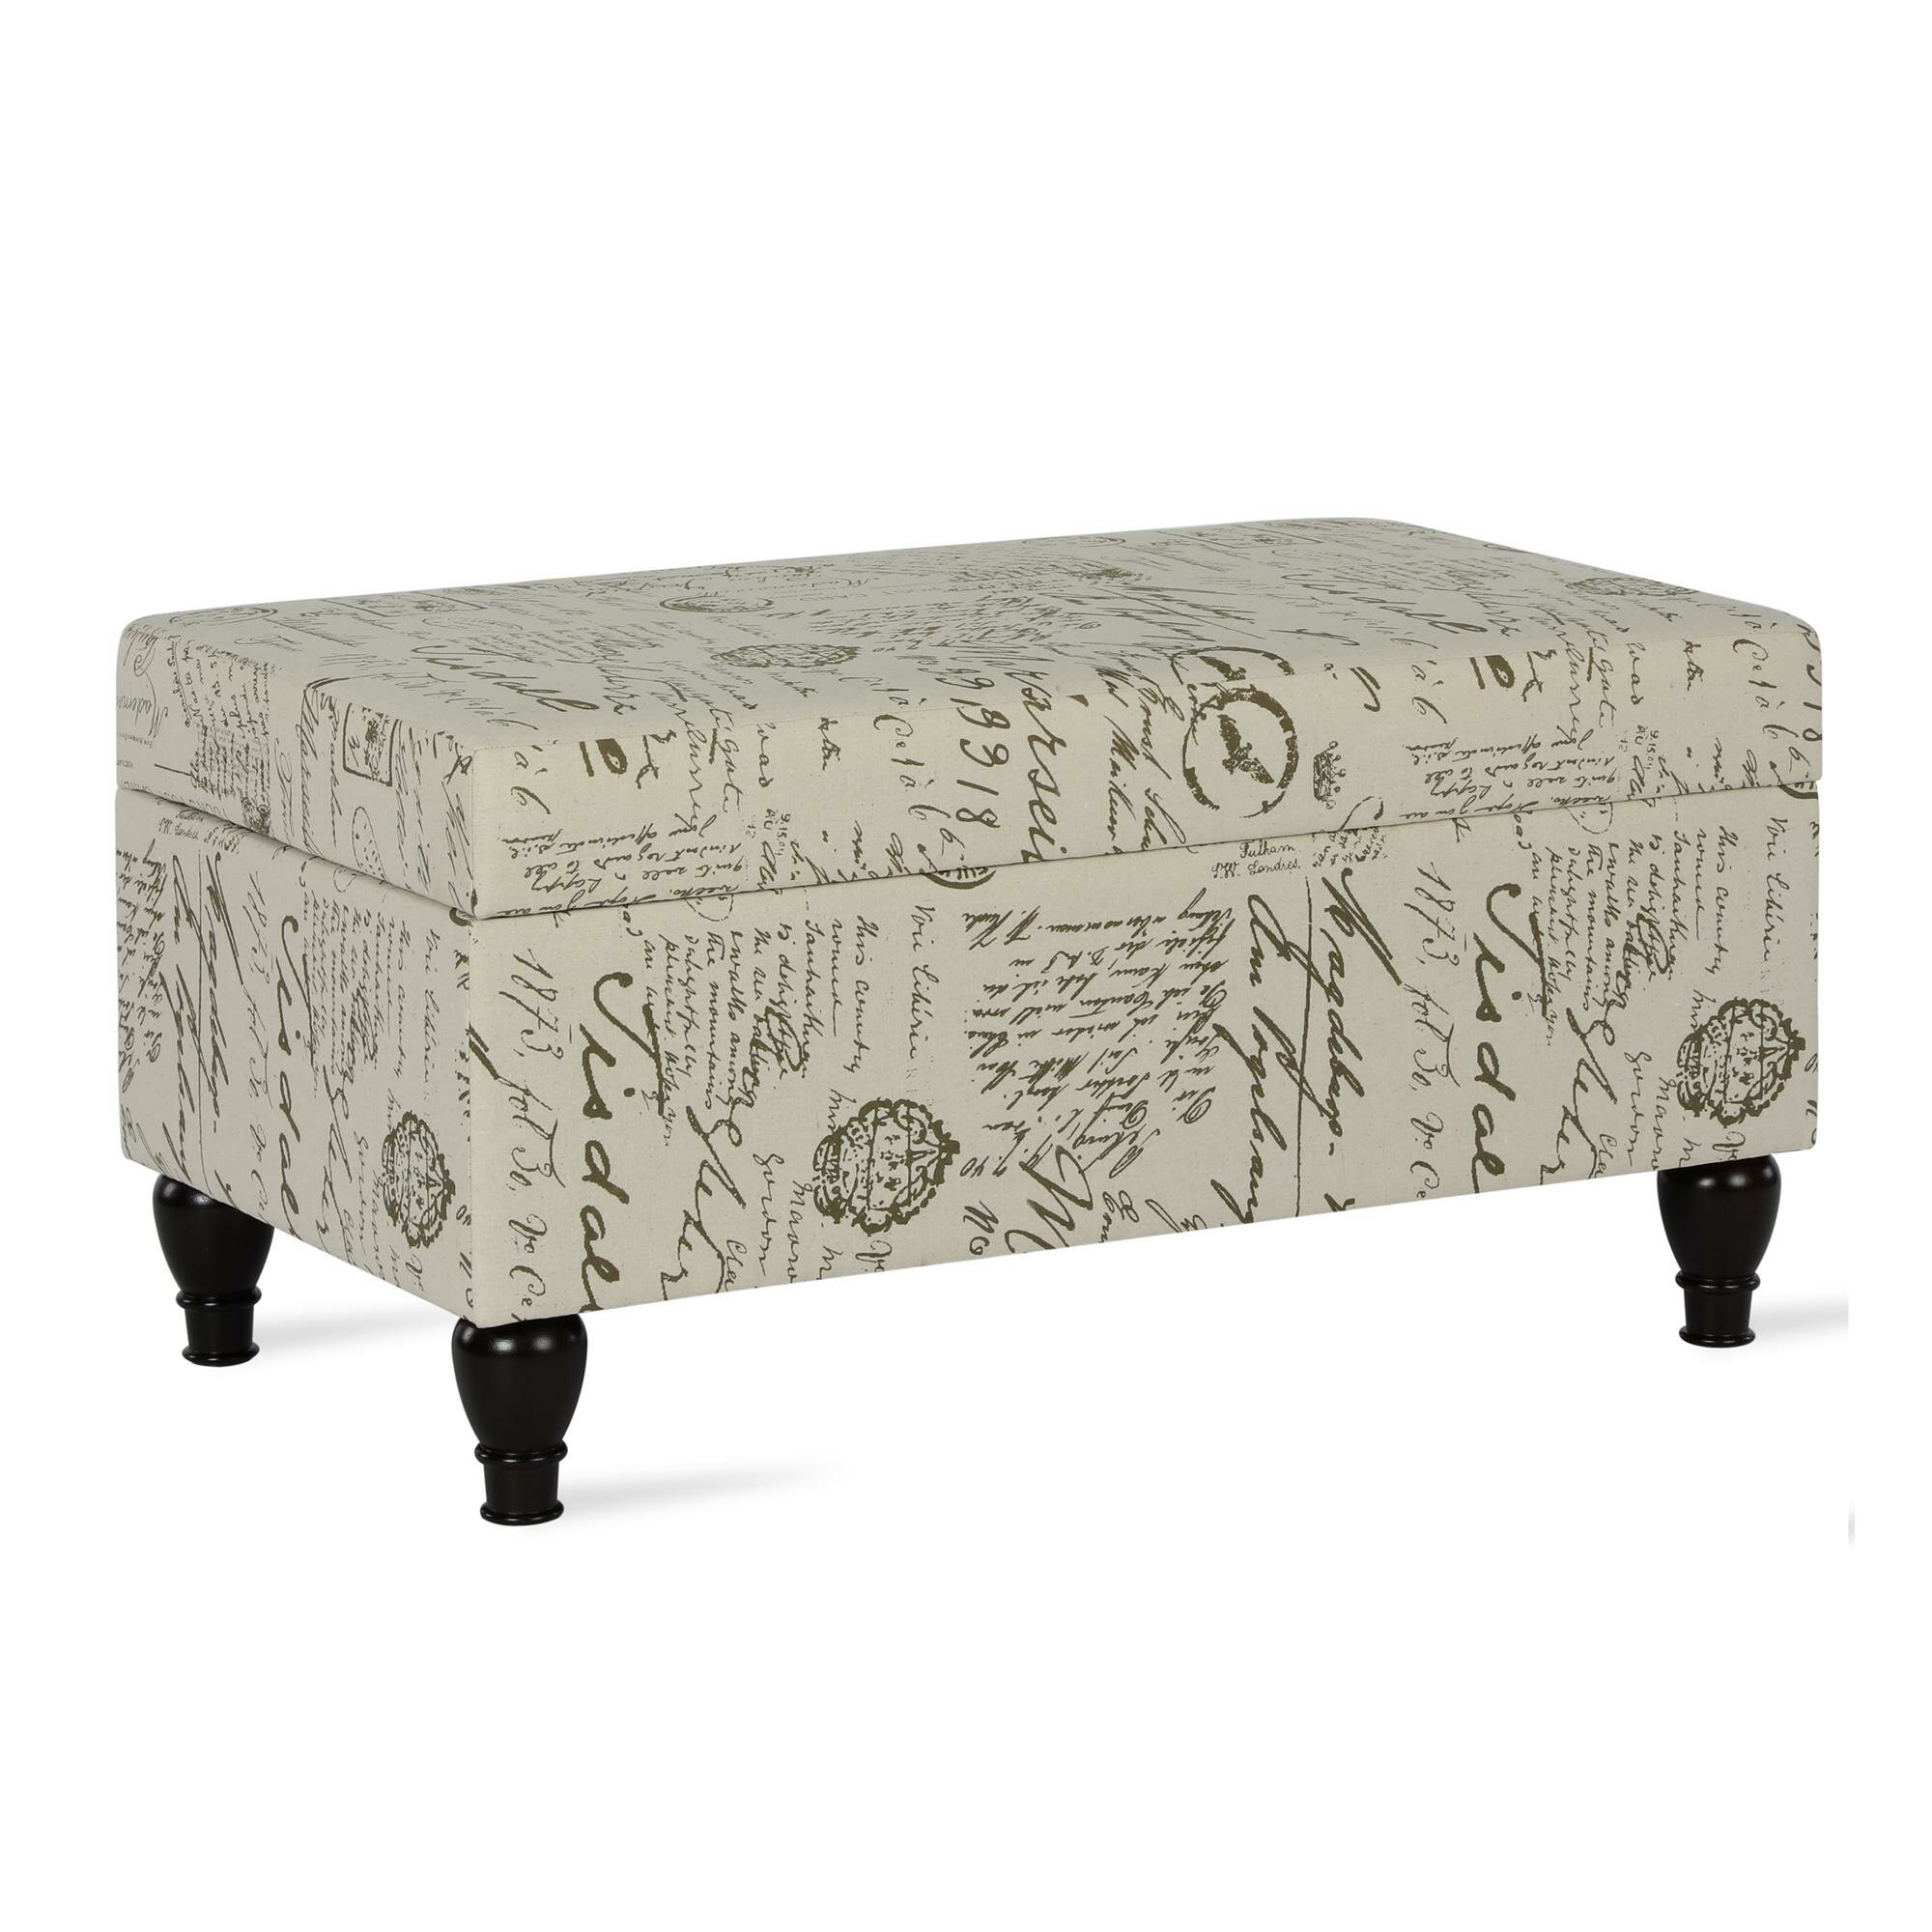 Peachy Details About Ophelia Co Bagnell Storage Ottoman Gmtry Best Dining Table And Chair Ideas Images Gmtryco